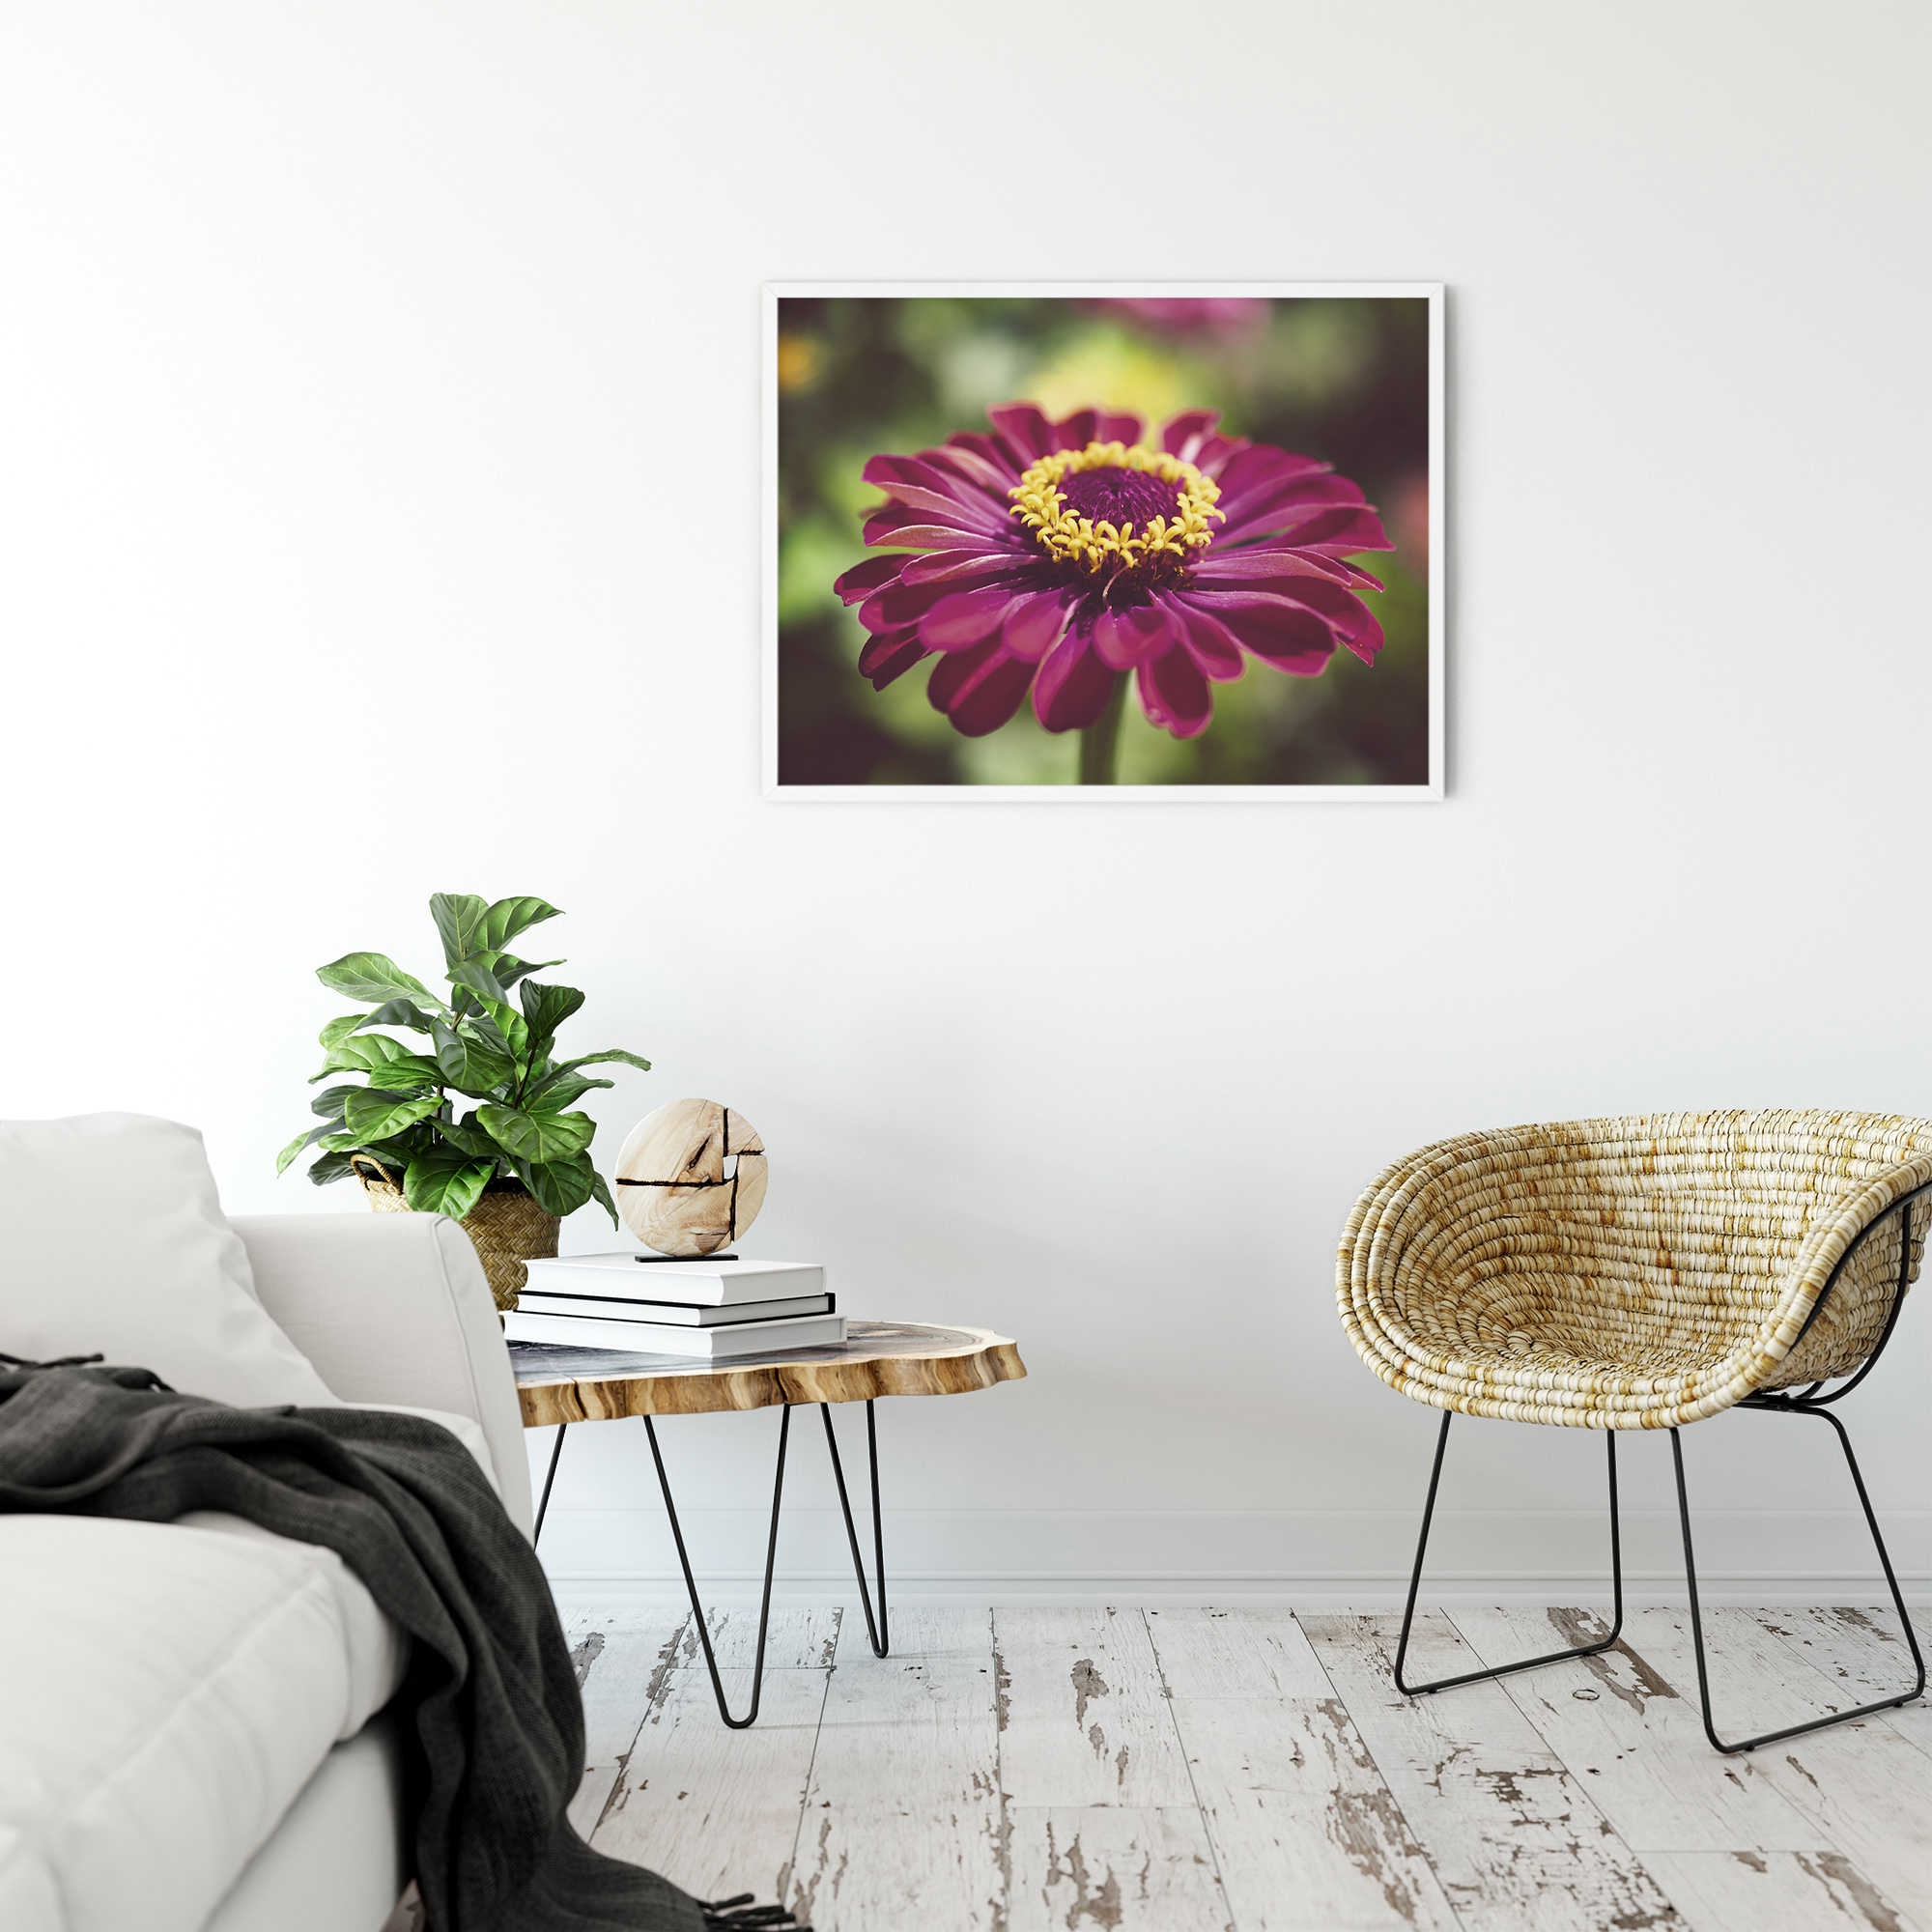 Moody Young - And- Old Age Pink Zinnia Flower Bloom Nature Photography Wall Art Prints Unframed and Fine Art Canvas Prints